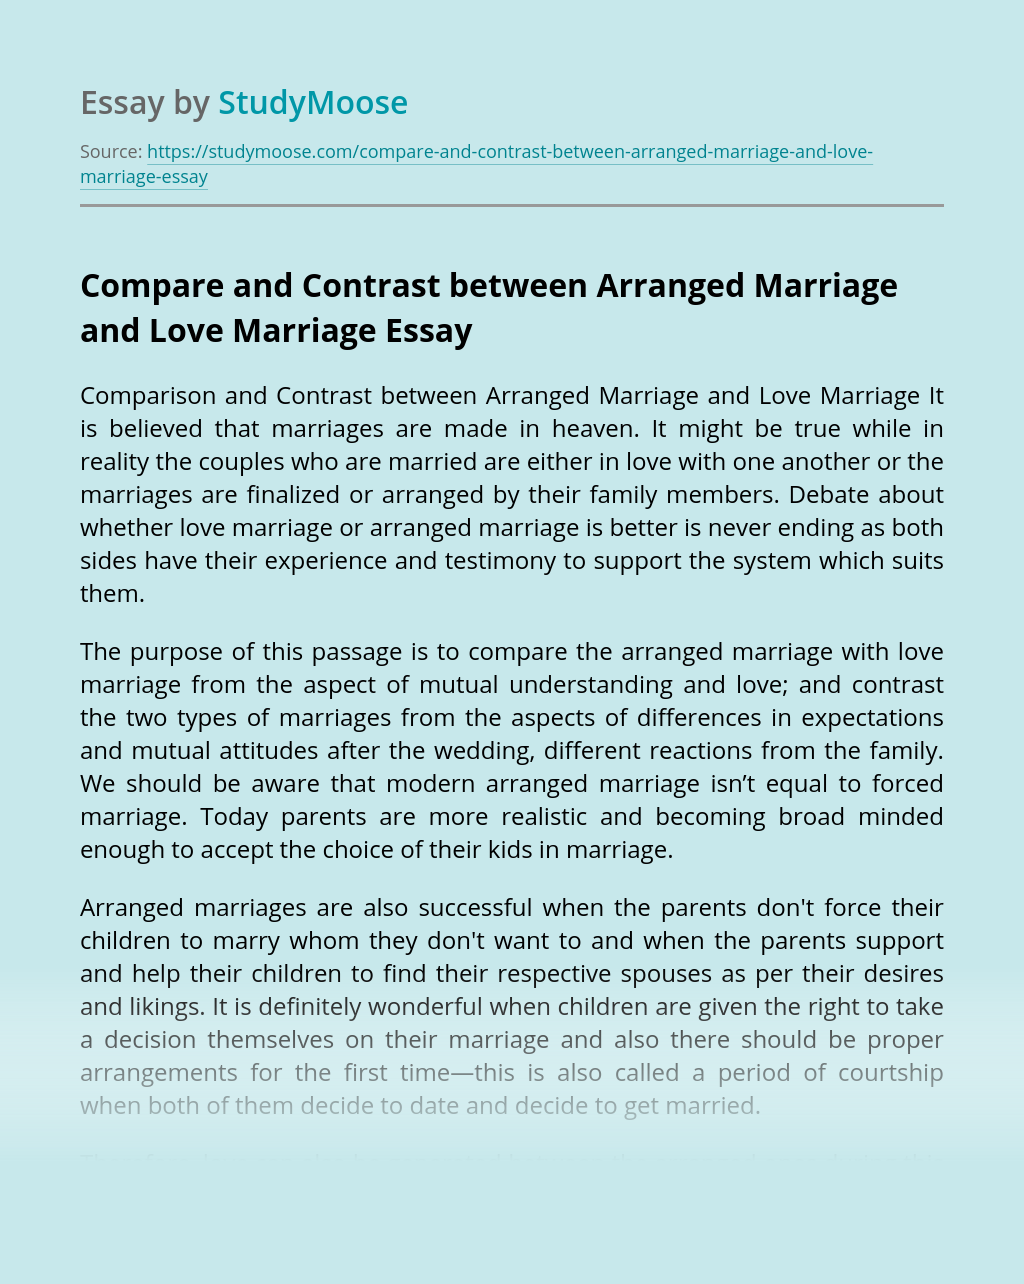 Compare and Contrast between Arranged Marriage and Love Marriage